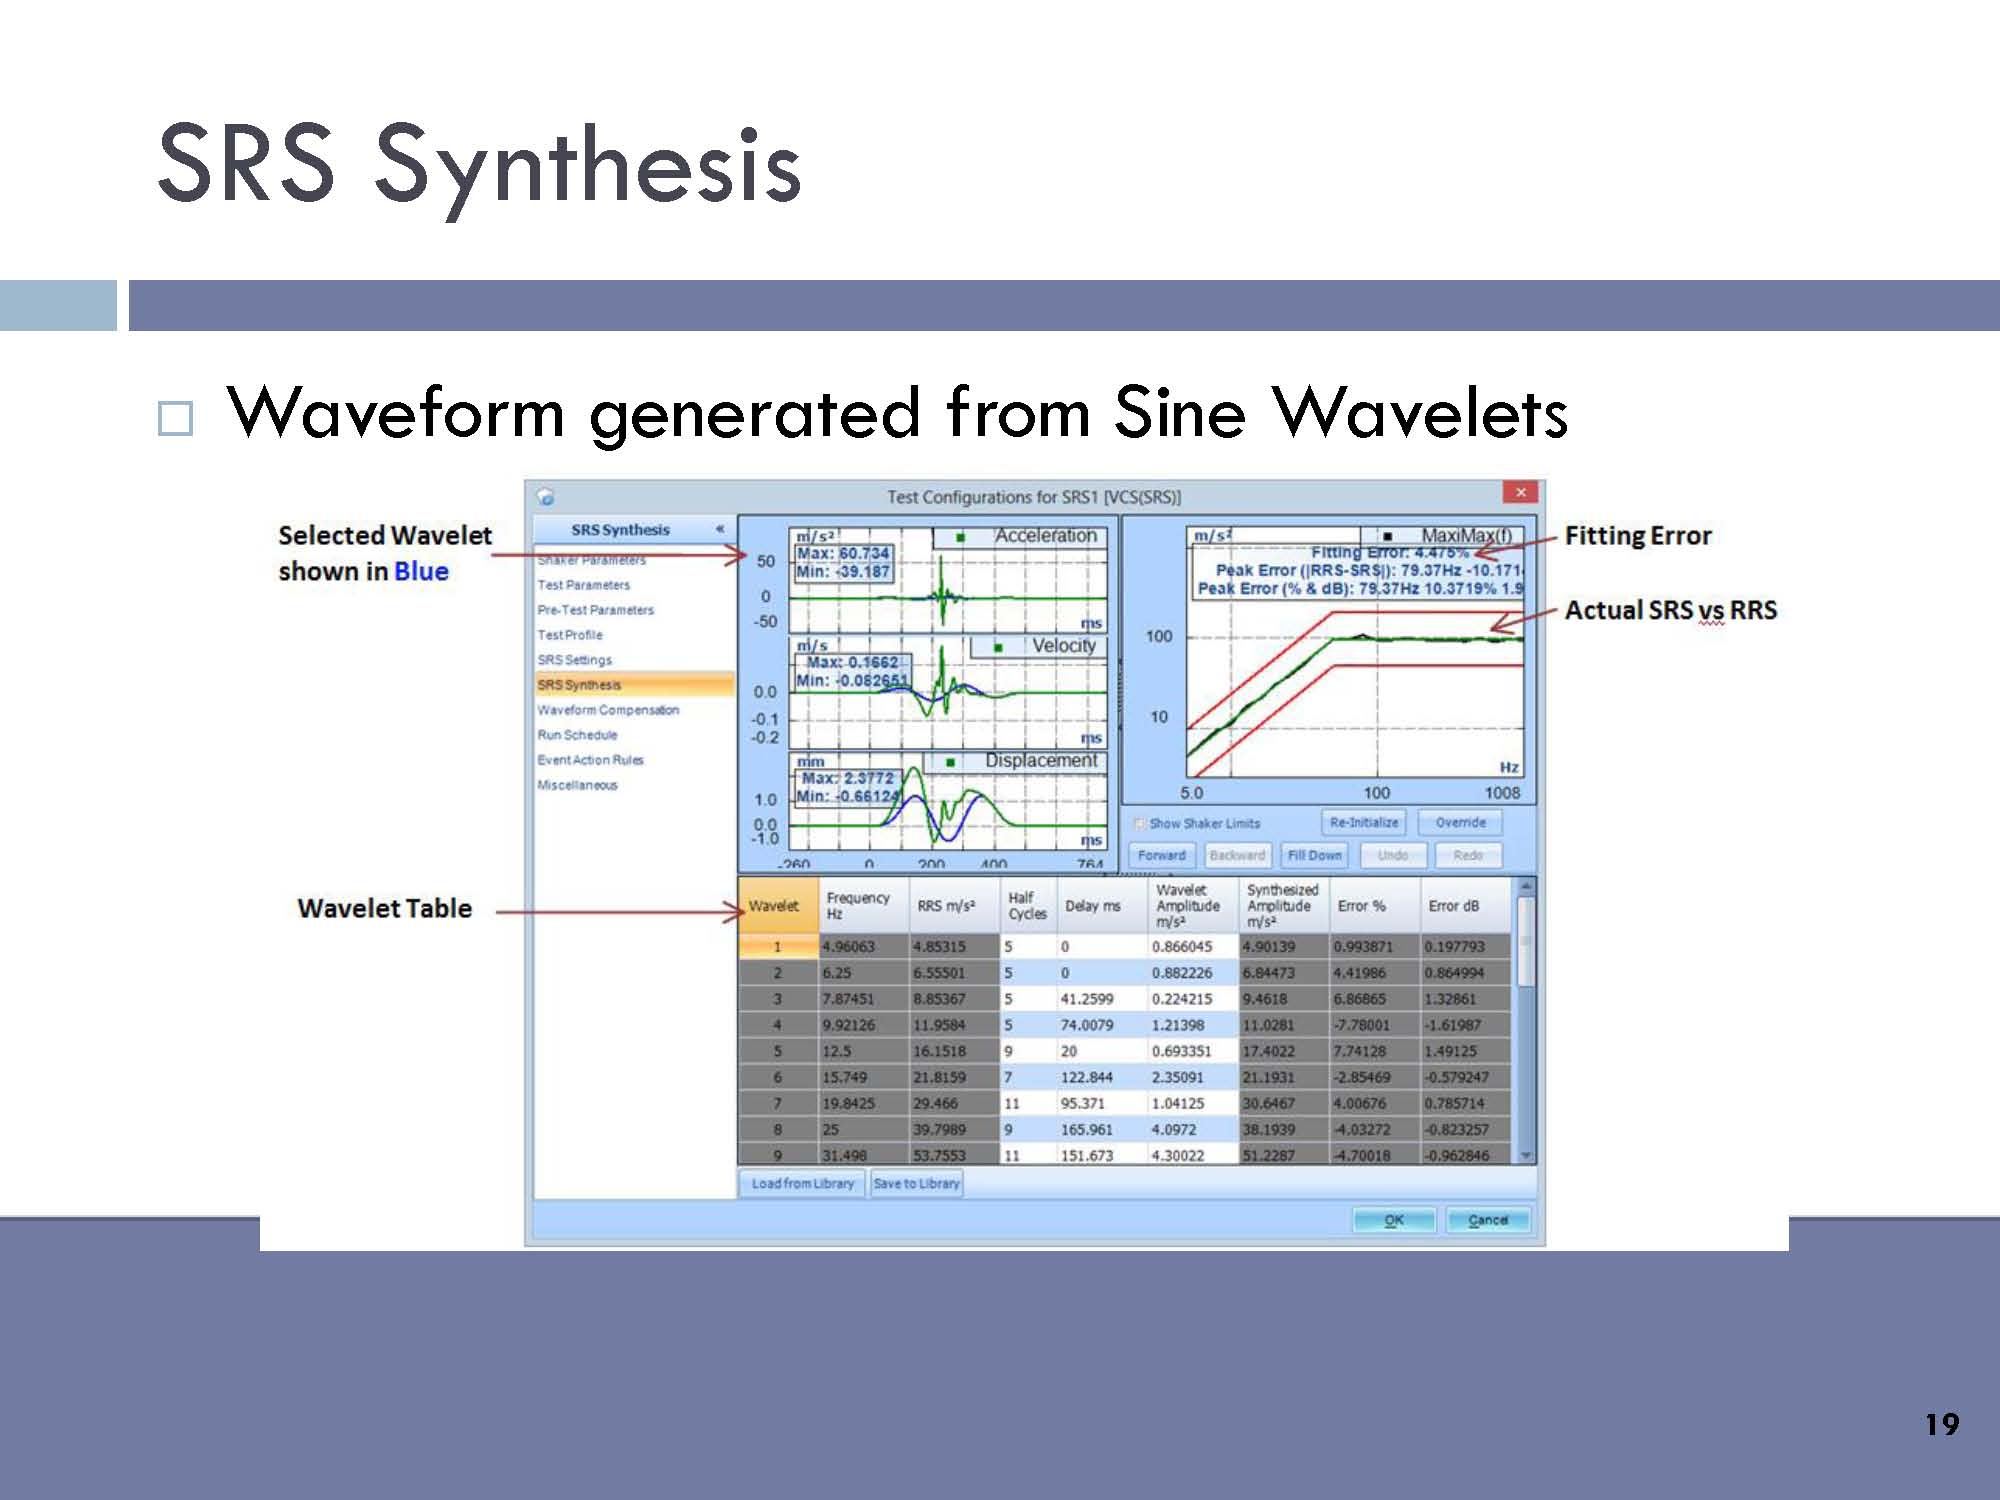 SRS Synthesis: Waveform generated from Sine Wavelets